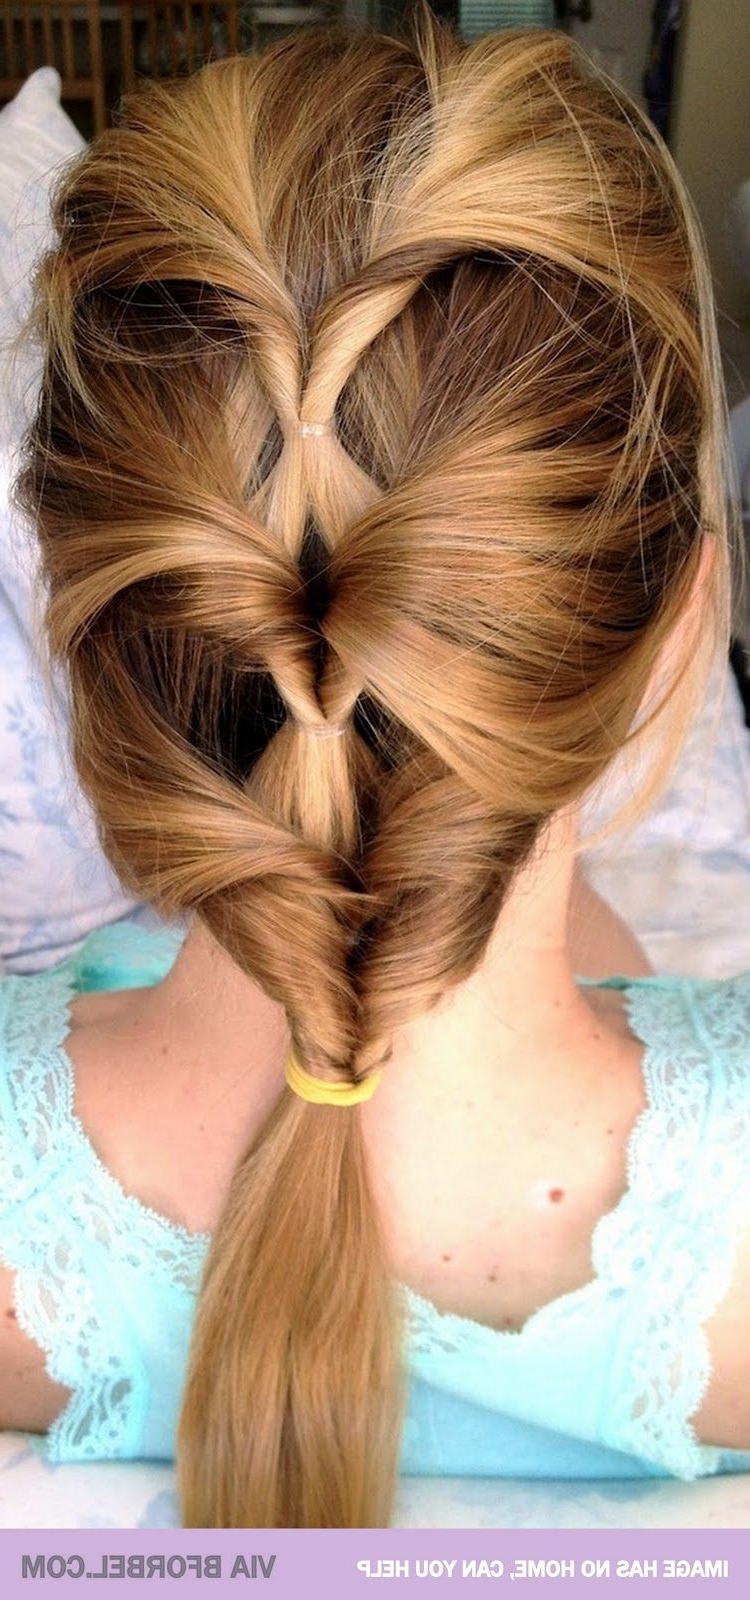 30 Simple And Easy Hairstyles For Straight Hair In 2019 Throughout Most Popular Mermaid Inception Braid Hairstyles (Gallery 3 of 20)